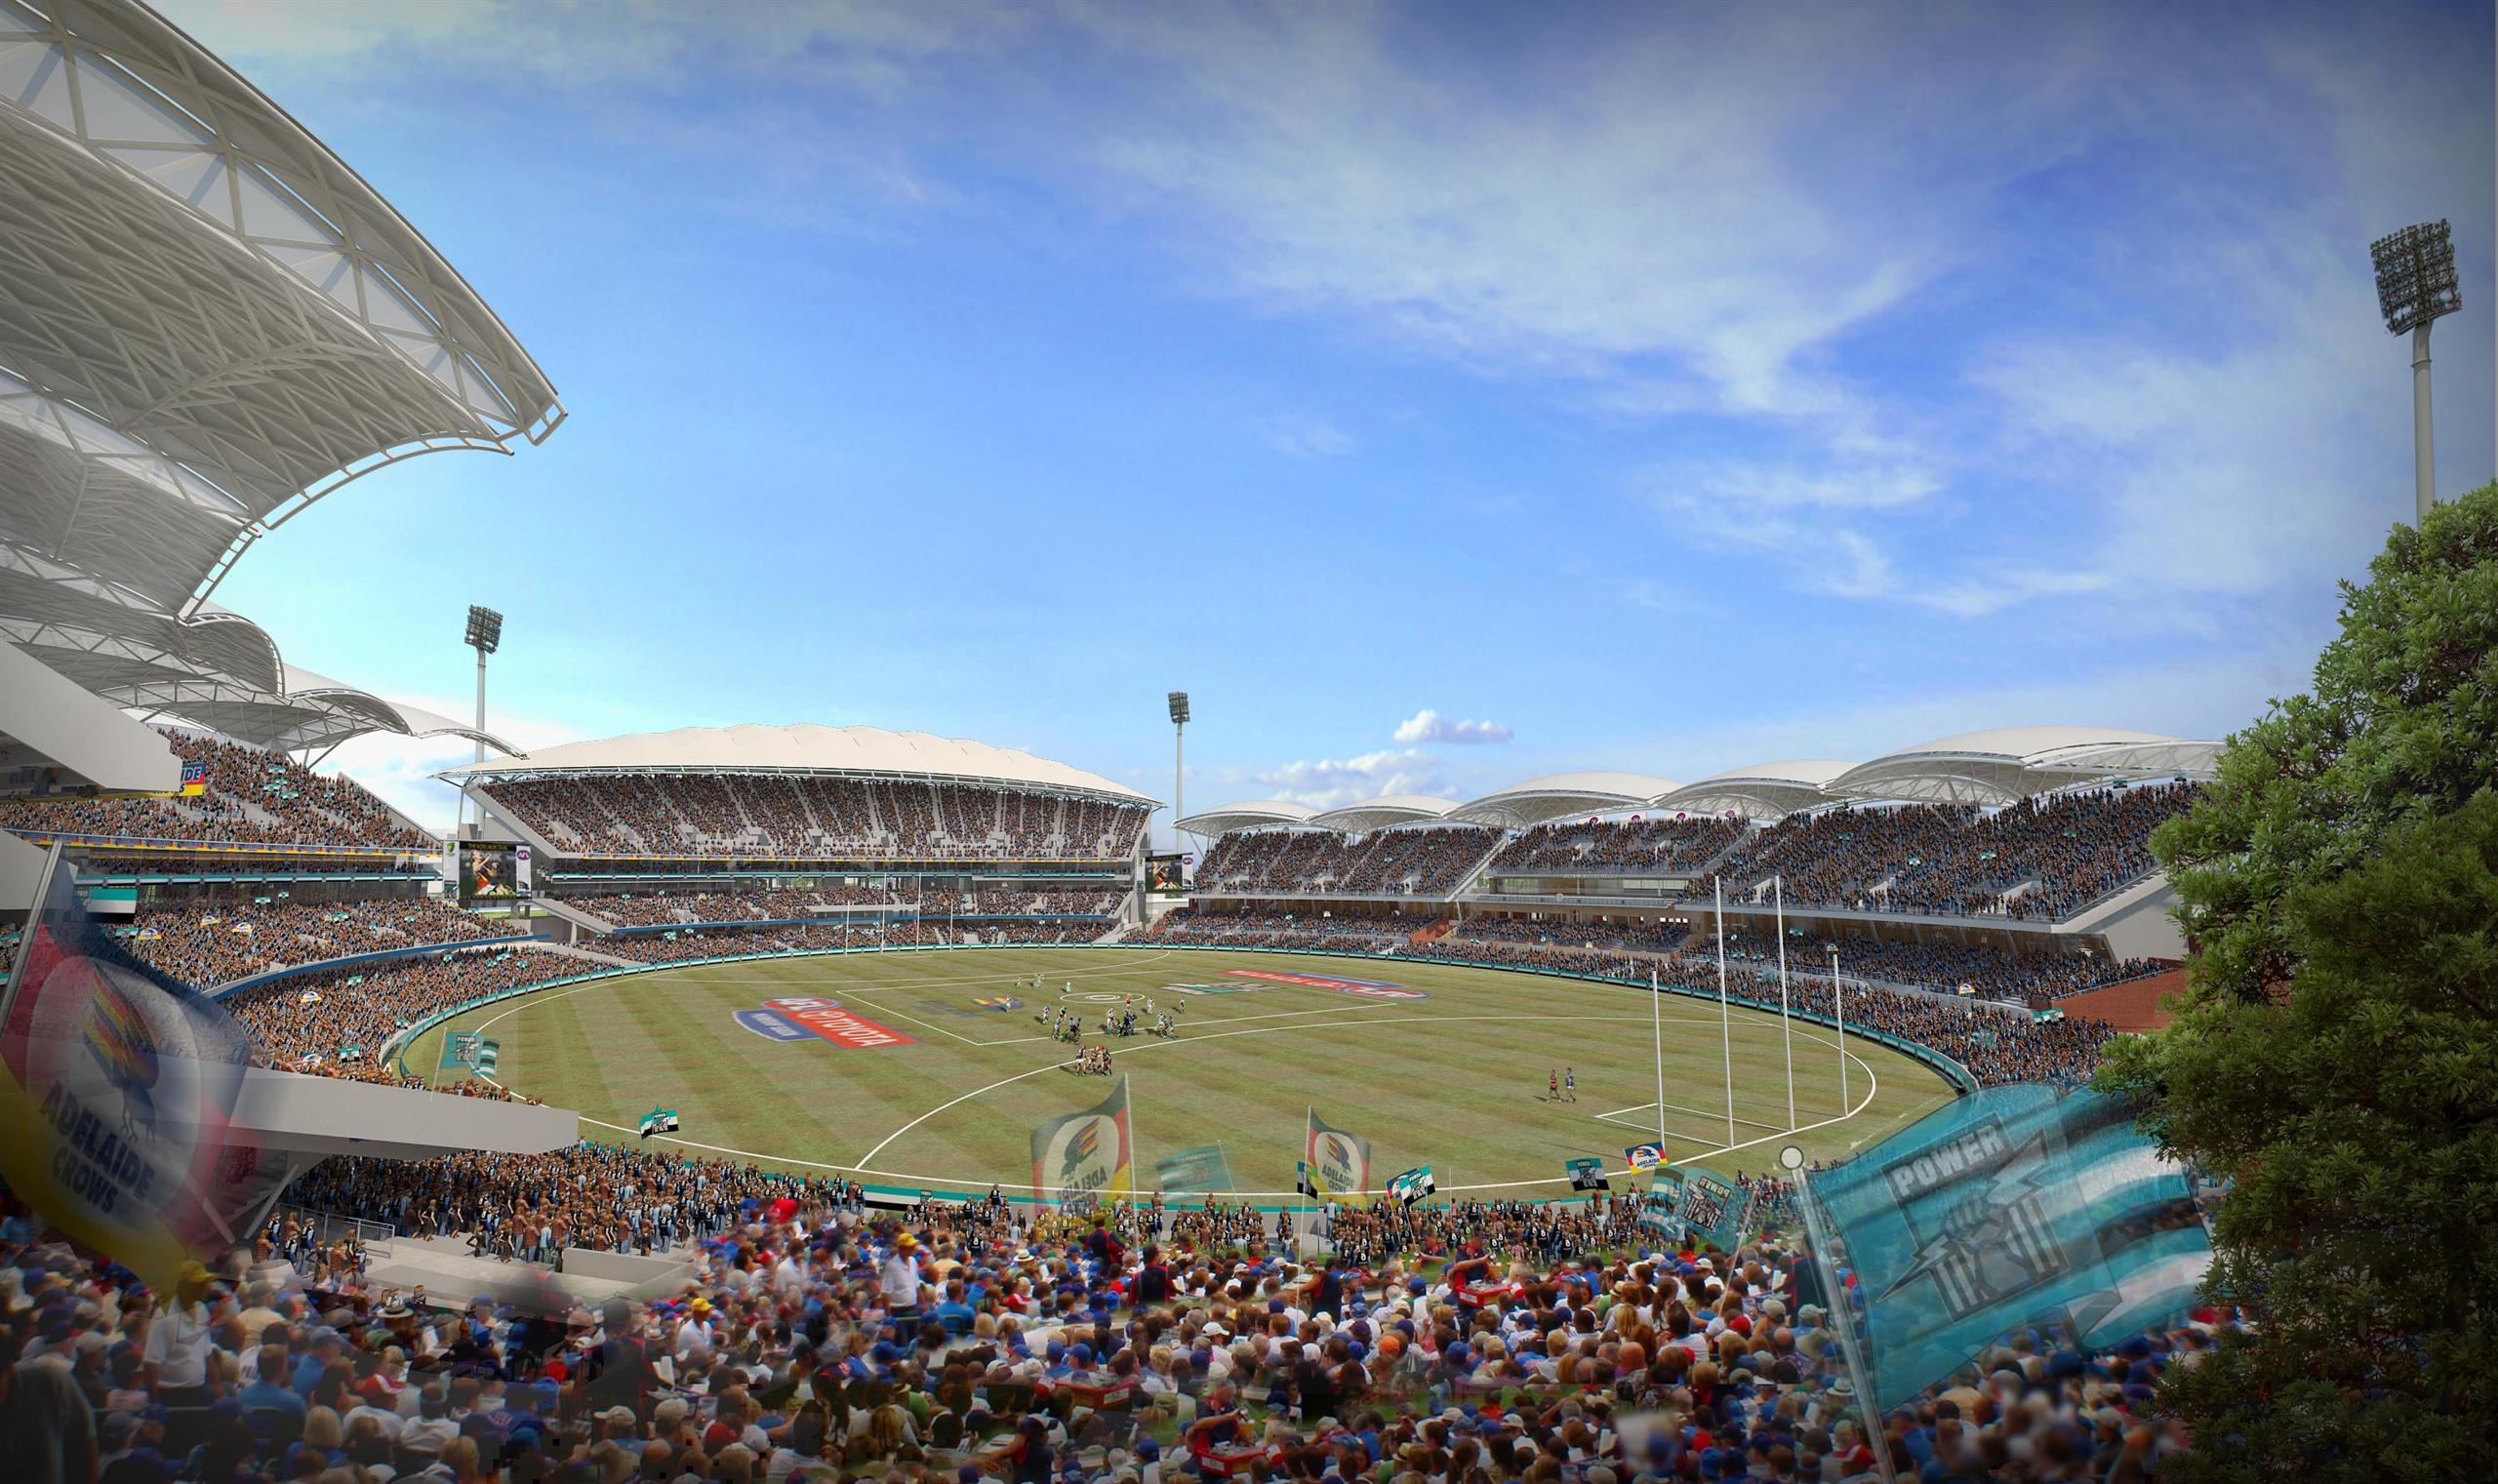 One of the world�s most picturesque sports grounds � is being redeveloped to create a world class 50,000 seat multi-sport stadium to re-energise recreational facilities within central Adelaide. Building on 25 years� experience of working at this unique ve